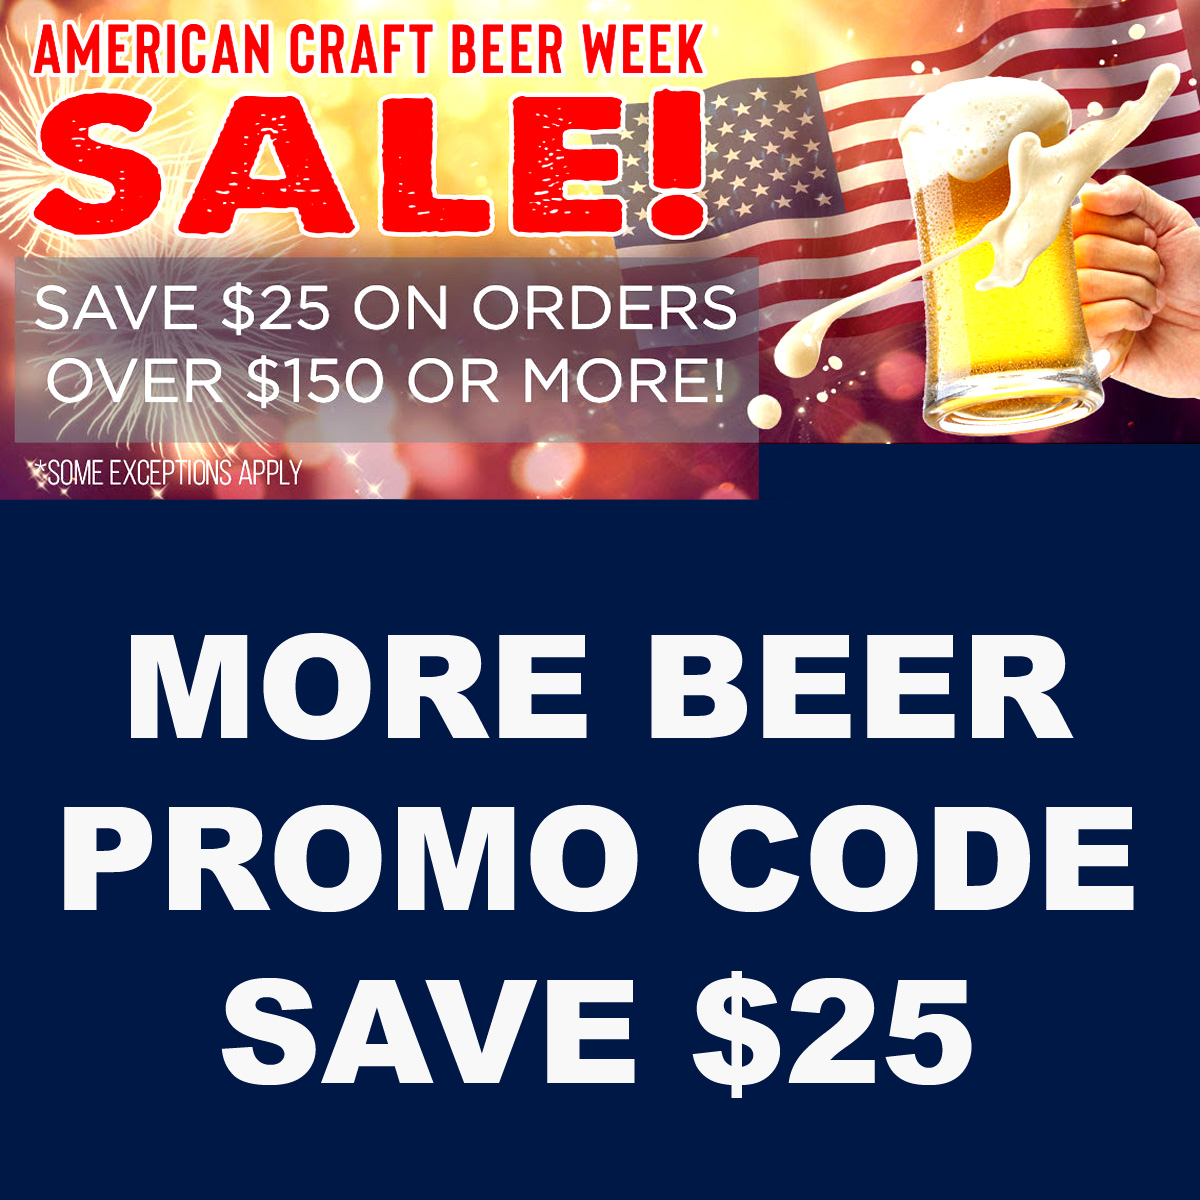 Home Wine Making Coupon Codes for Use this More Beer promo code for $25 off your $150 purchase Coupon Code